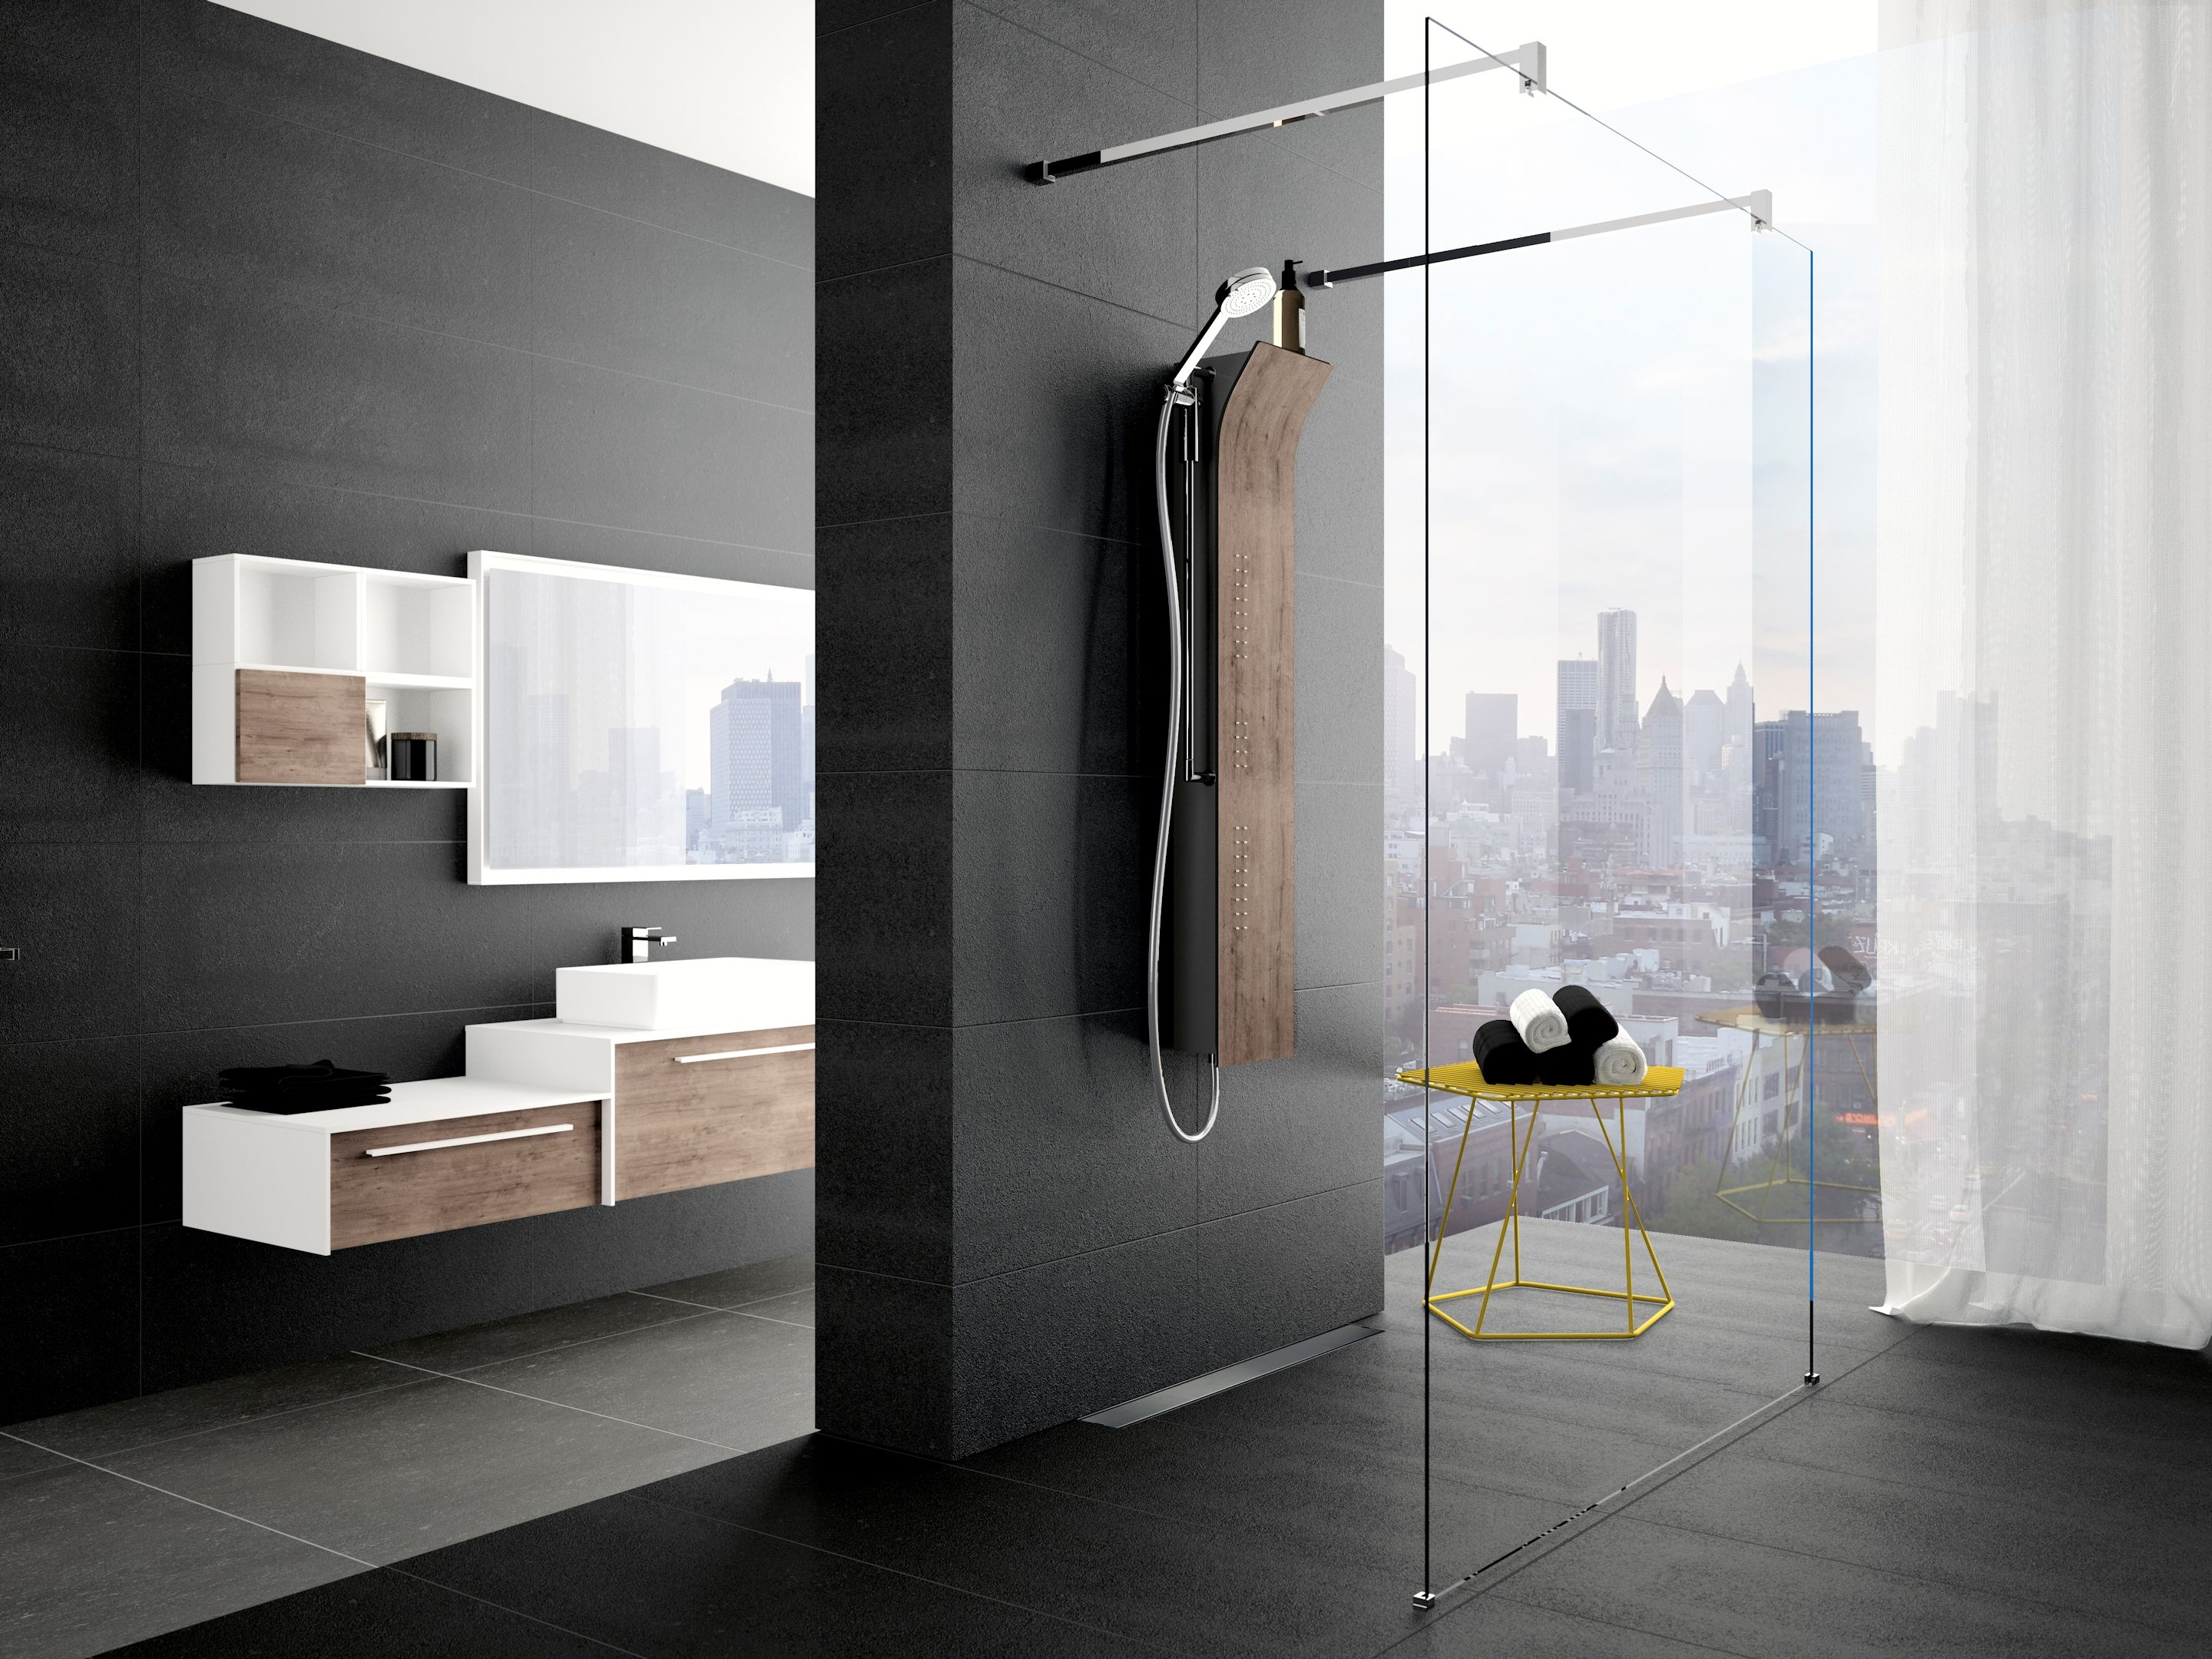 novellini douchepaneel vanity product in beeld startpagina voor badkamer idee n uw. Black Bedroom Furniture Sets. Home Design Ideas